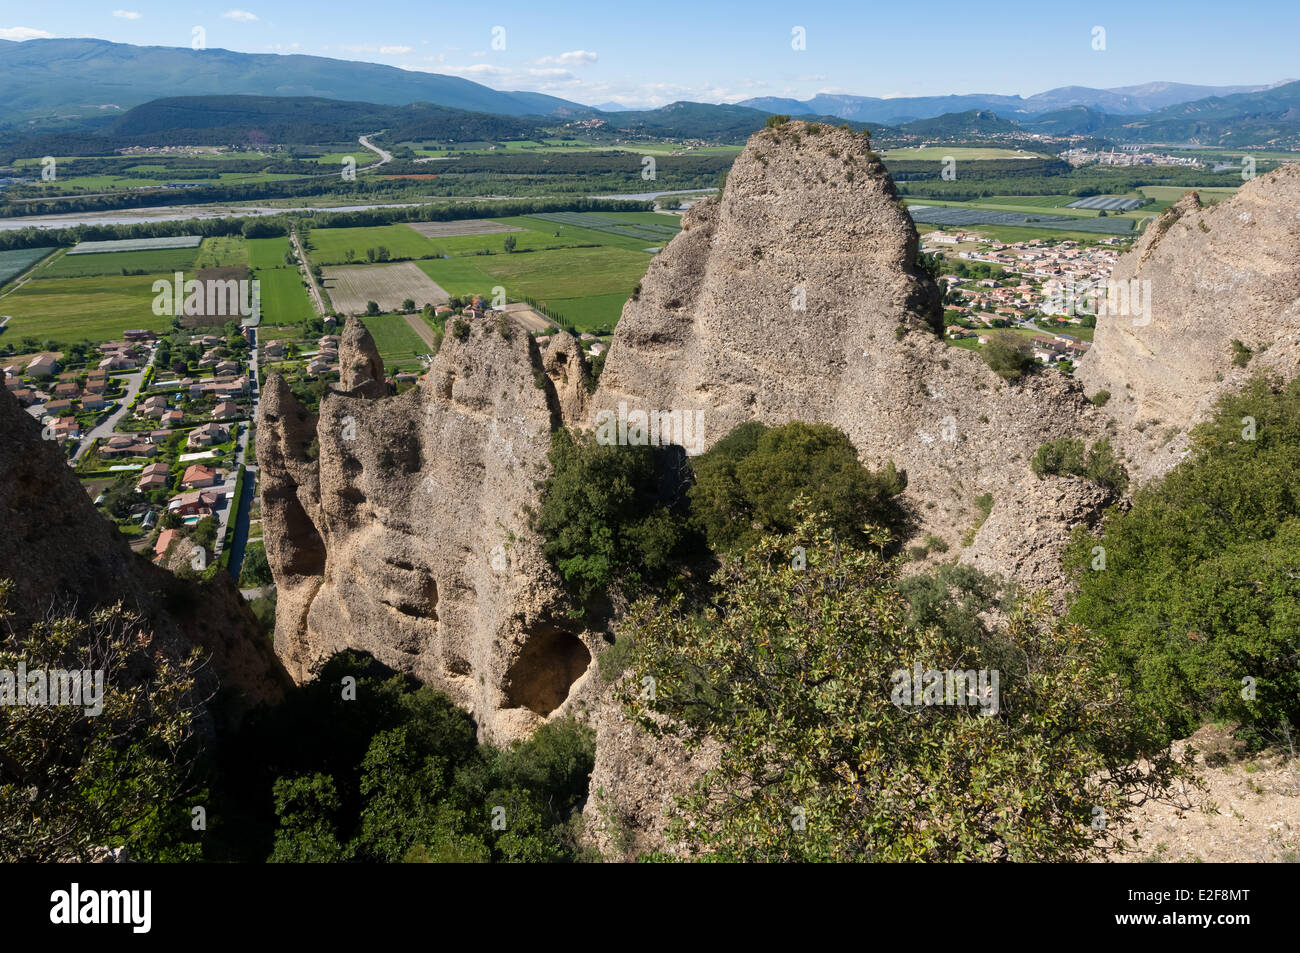 France, Alpes de Haute Provence, Les Mees, Penitents rock, or tuff monoliths overlooking the medieval village - Stock Image